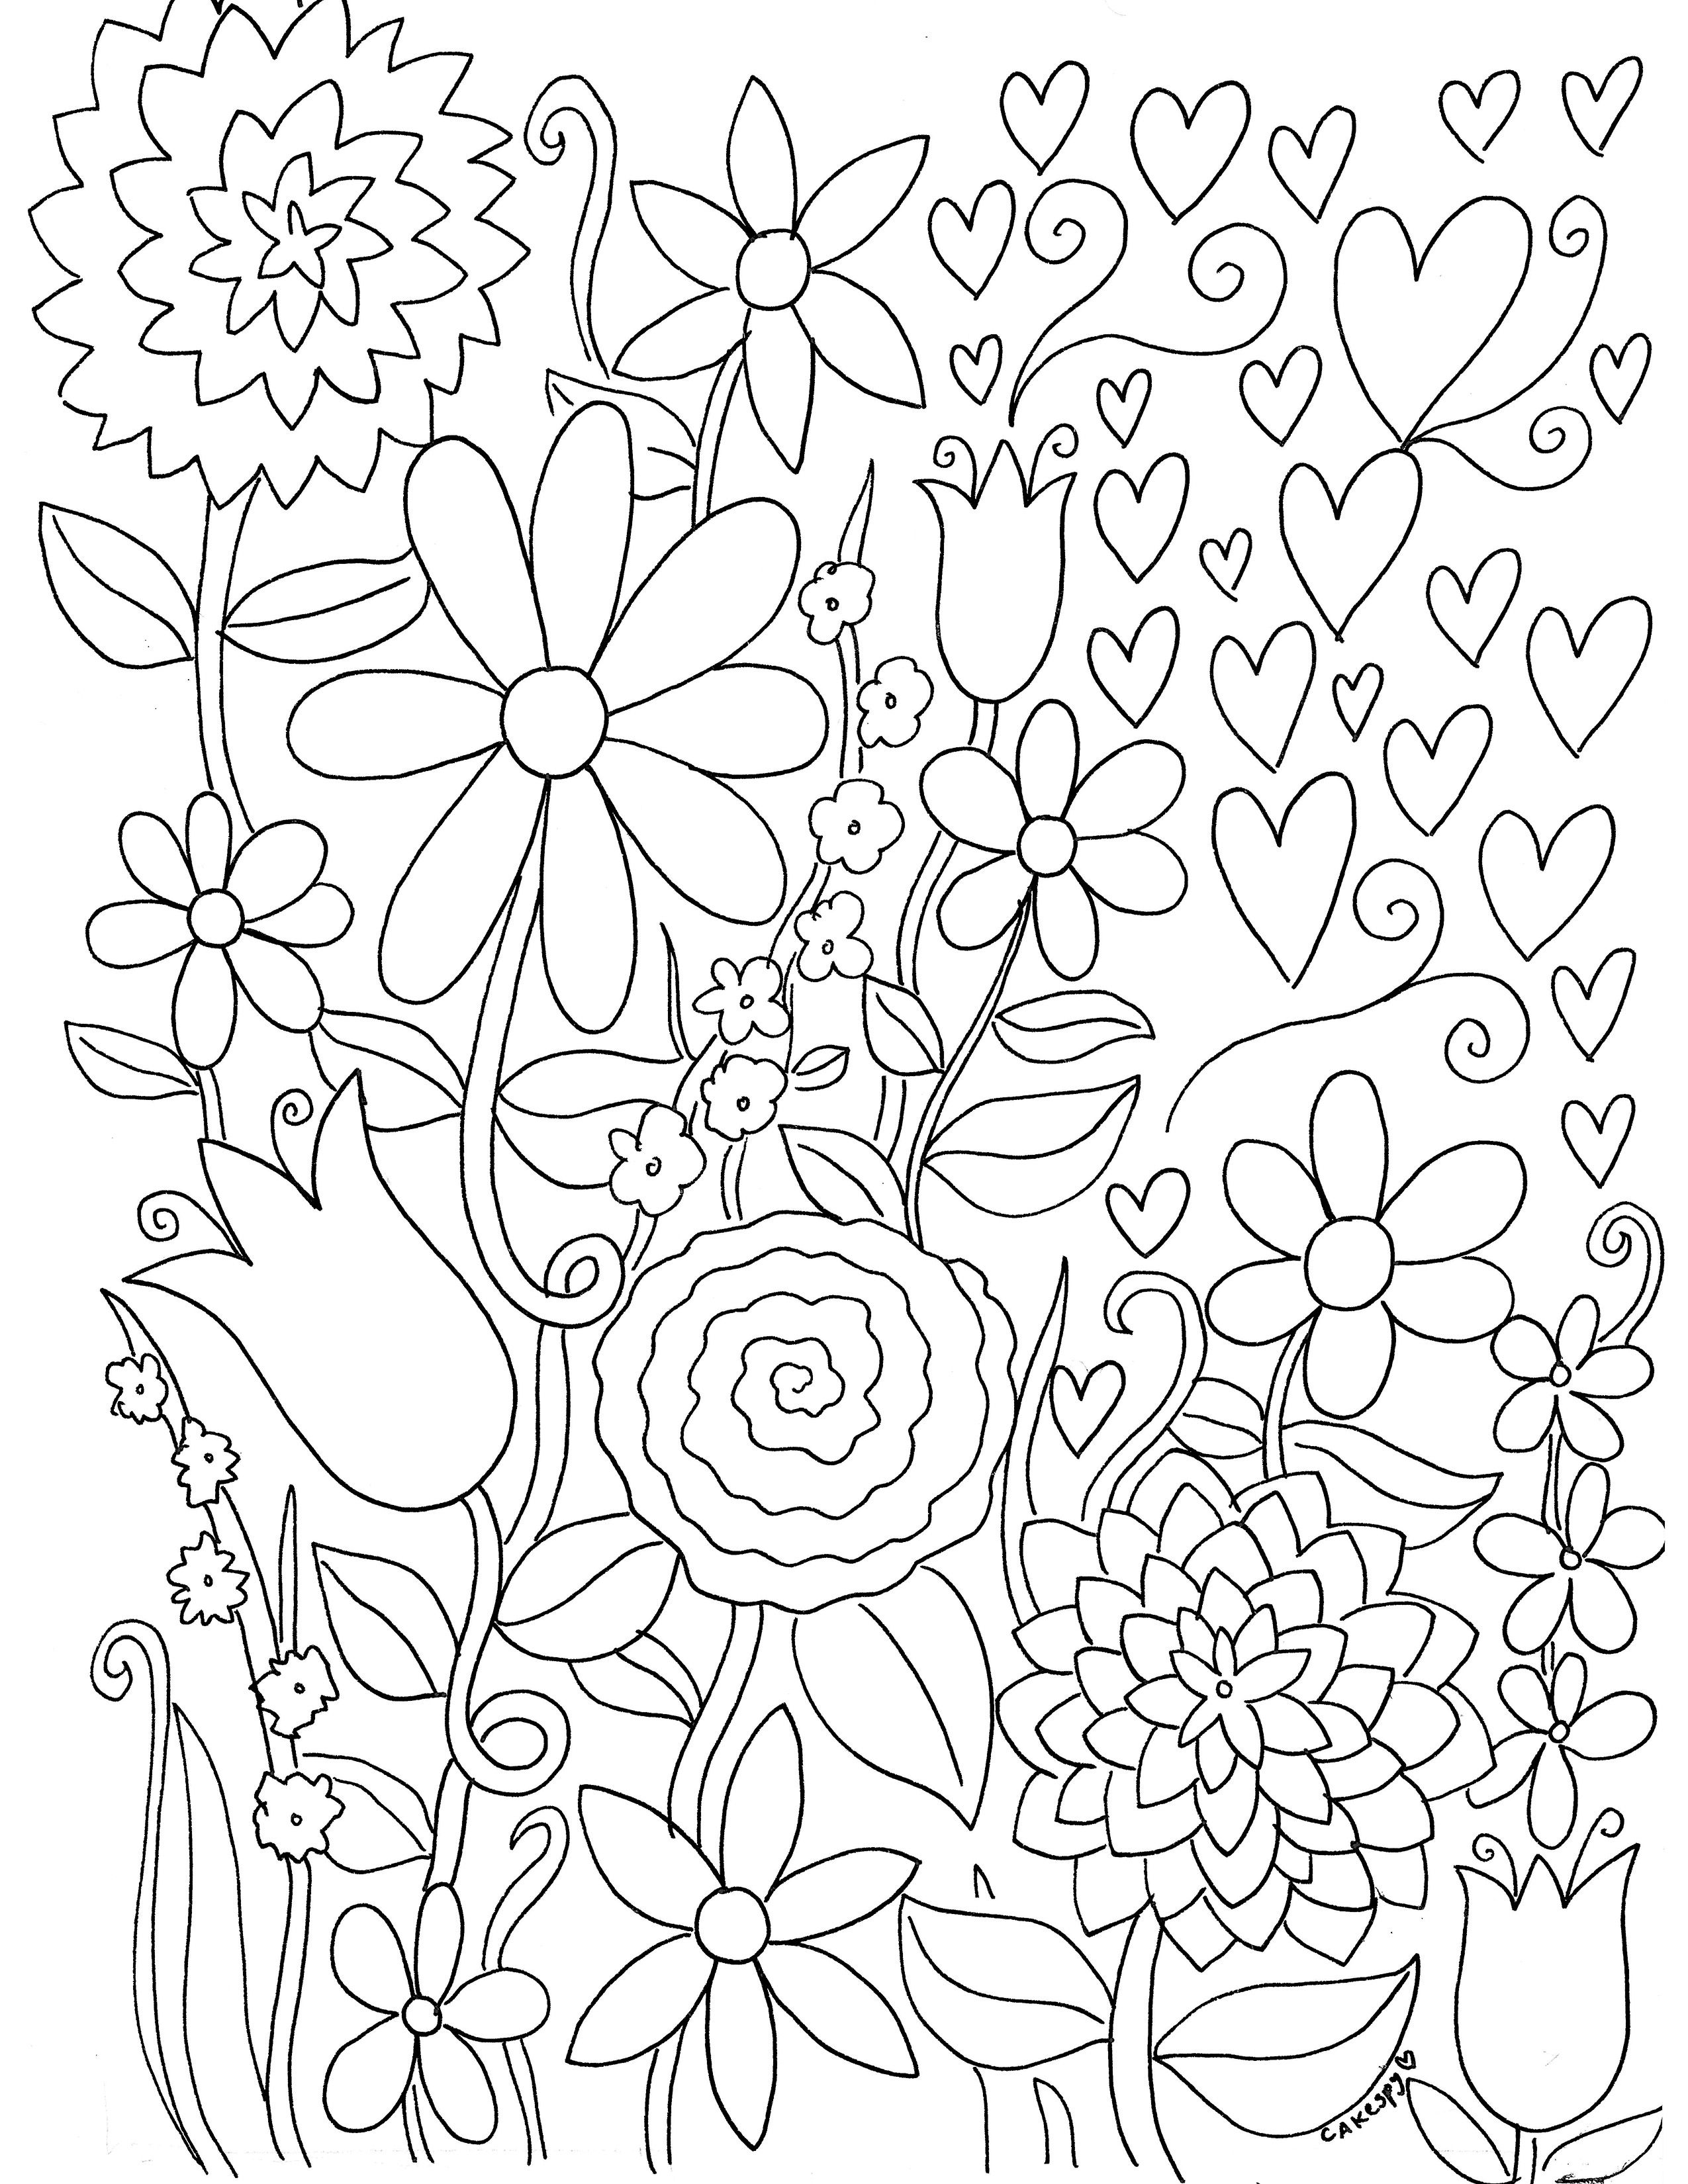 Free Coloring Book Pages For Adults | Color My World